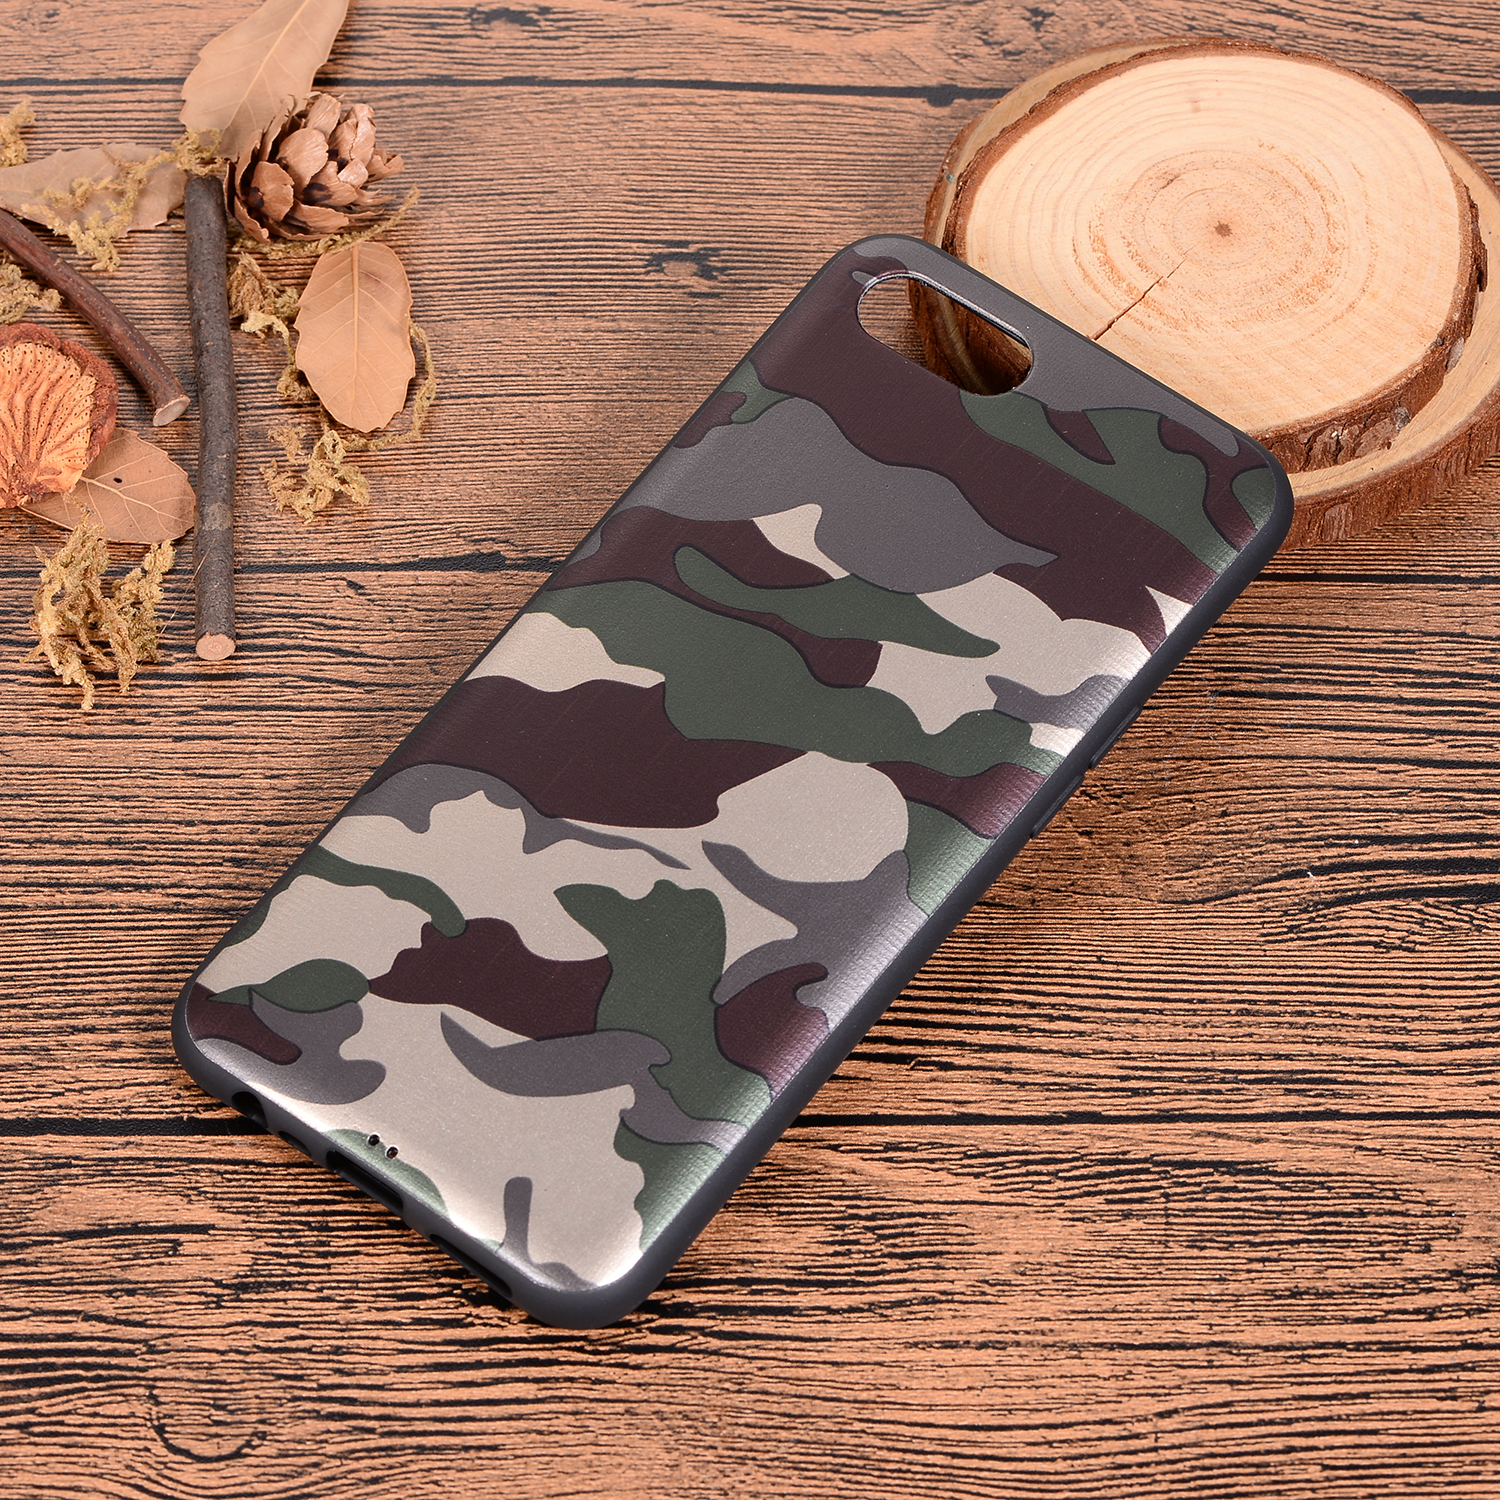 Camouflage Pattern Phone Case For Oppo Realme C2 Coque Green Soft TPU Silicone Back Cover For Oppo Realme C2 Army Camo Etui Bag